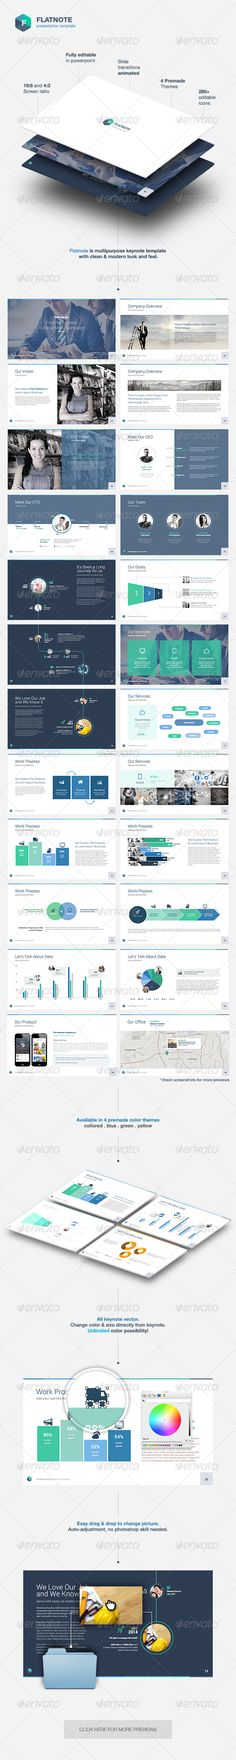 Flatnote - Powerpoint Template  - PowerPoint Templates Presentation Templates